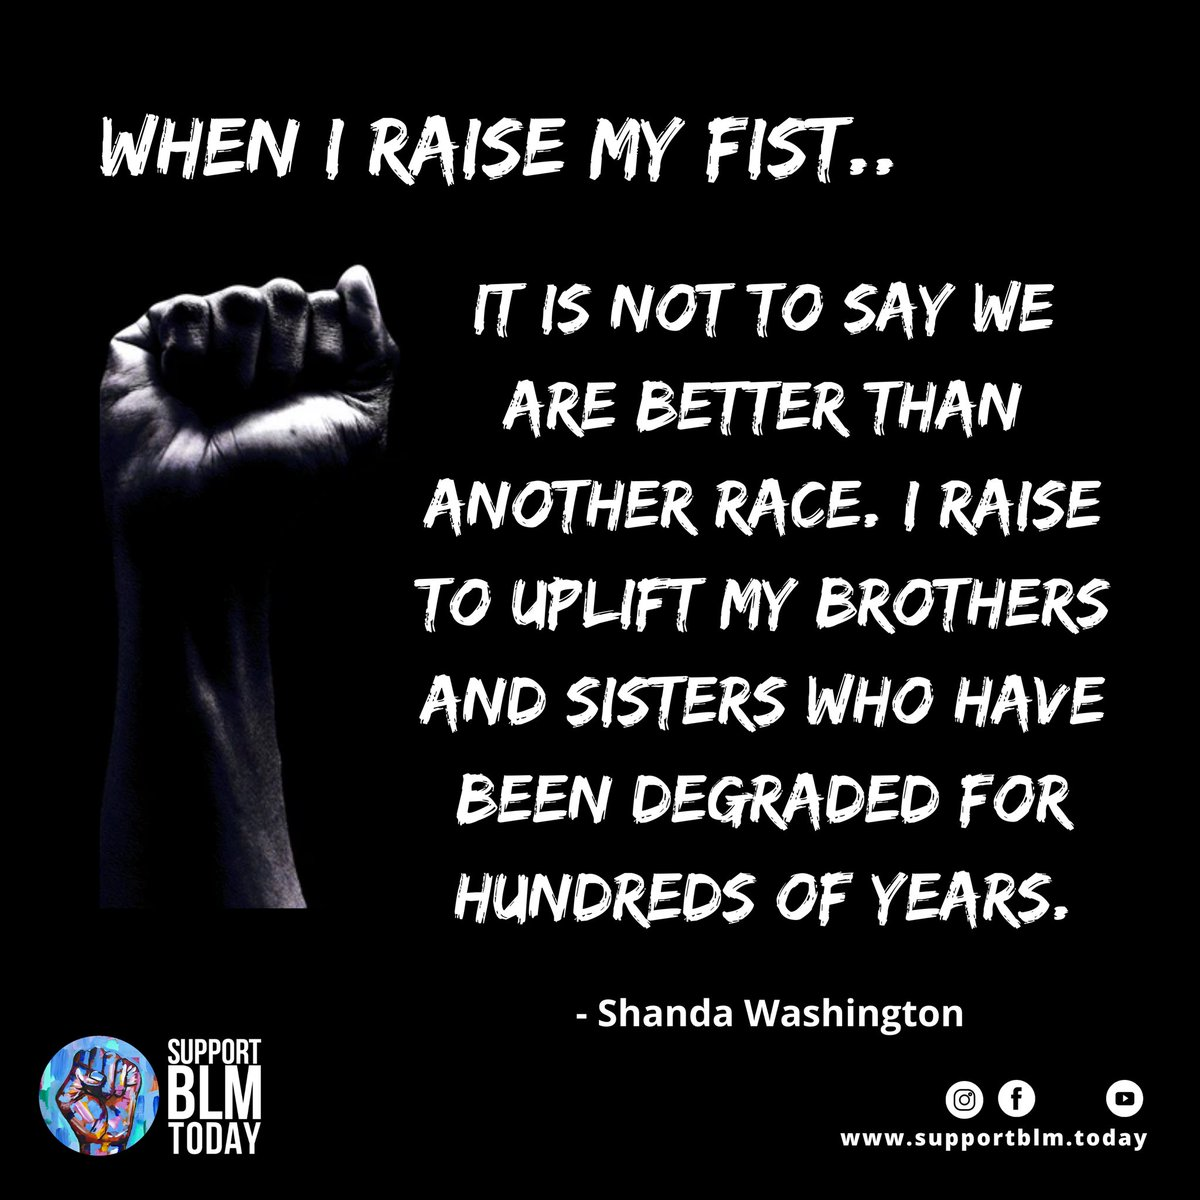 When I raise my fist ✊🏽✊🏾✊🏿    #blacklivesmatter #blmquotes #blm #blm2021 #equality #racism #solidarity #blacklives #mlk #blmmovement #nojusticenopeace #blacklivesmatterplaza #blmprotest #blmfist